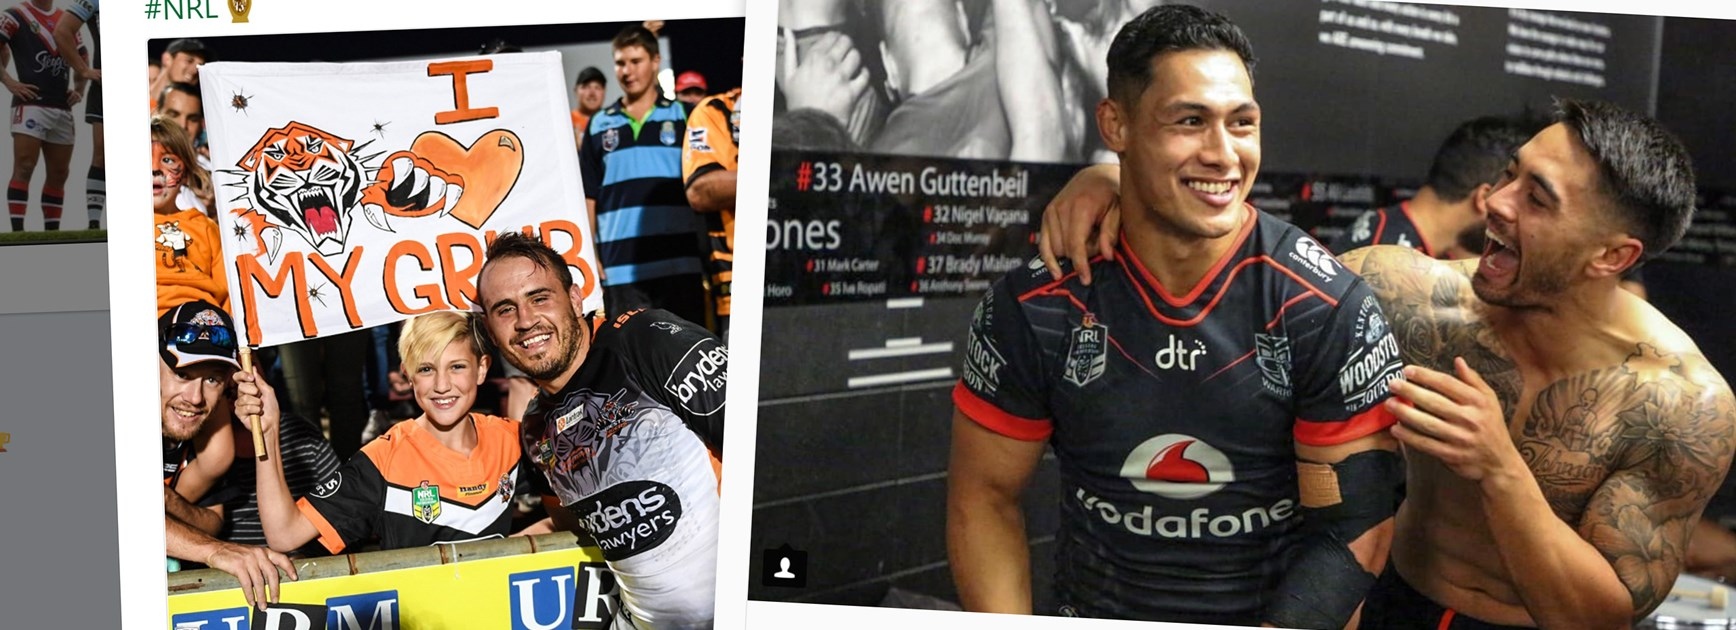 NRL Social: King Gutho and the Grub are back